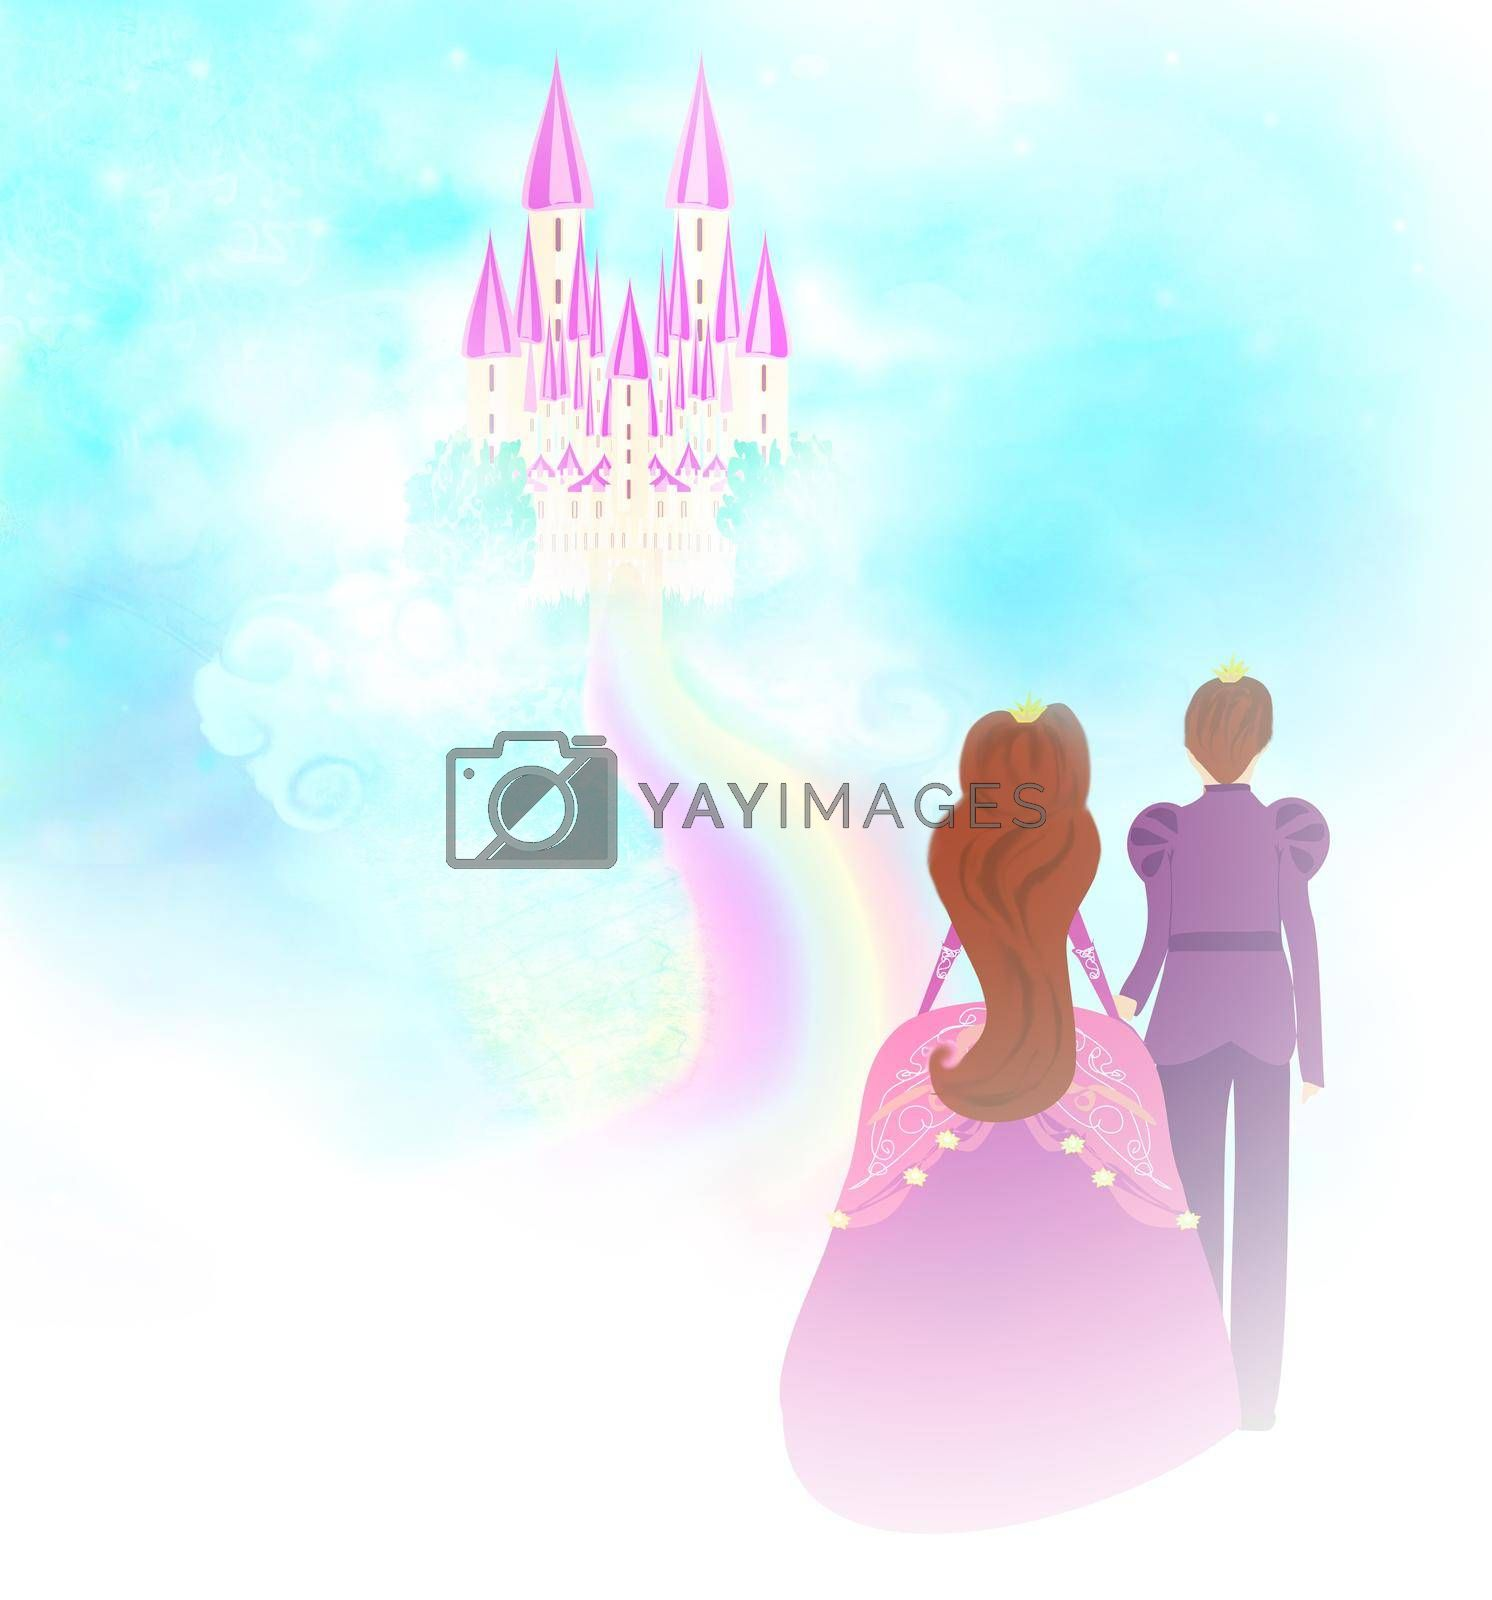 Royalty free image of beautiful Castle in clouds and princess with prince  by JackyBrown